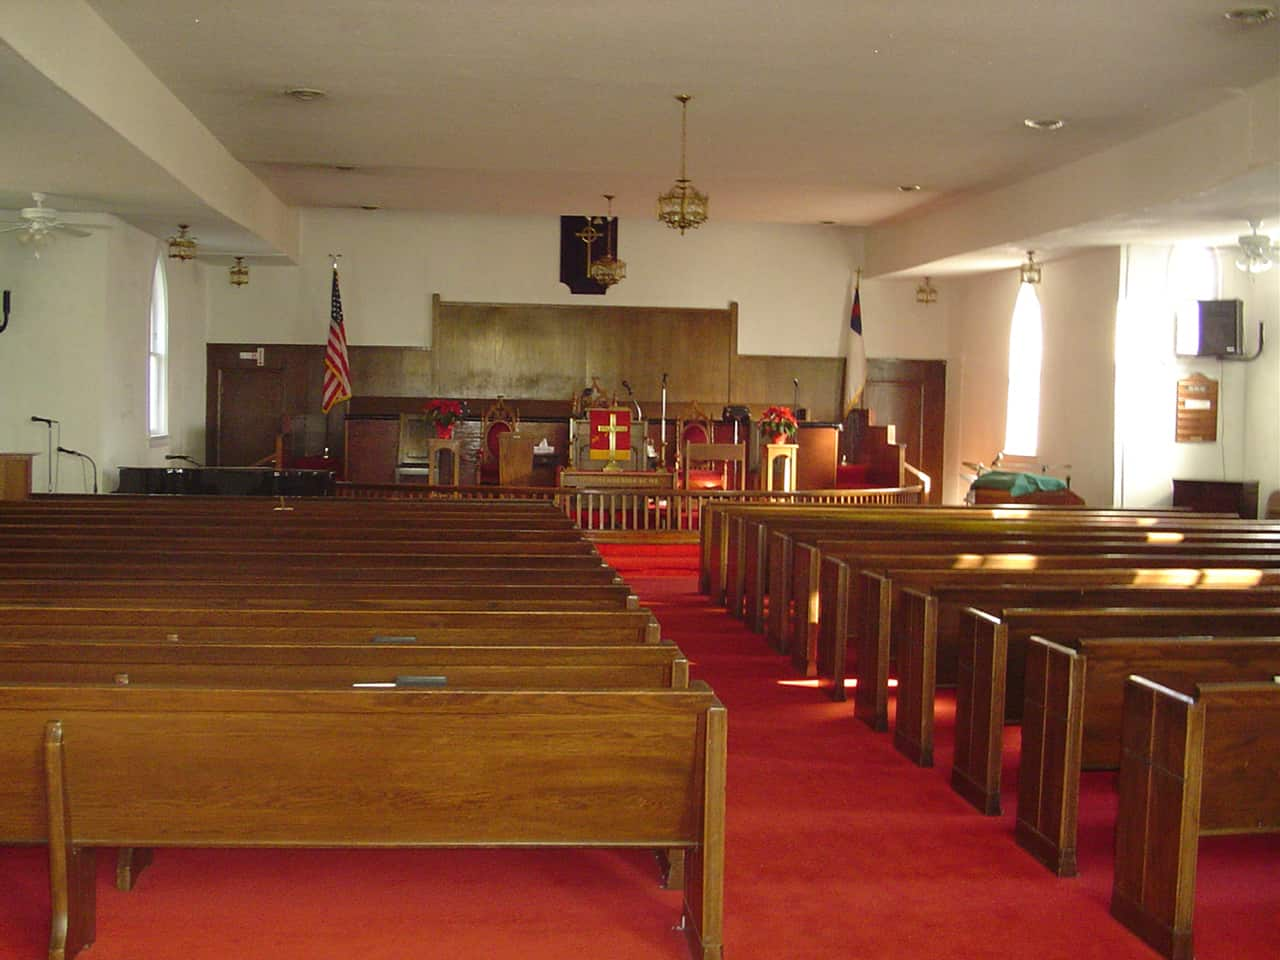 A flat ceiling put in the sanctuary in 1972 completely changed the original aesthetic of the interior.